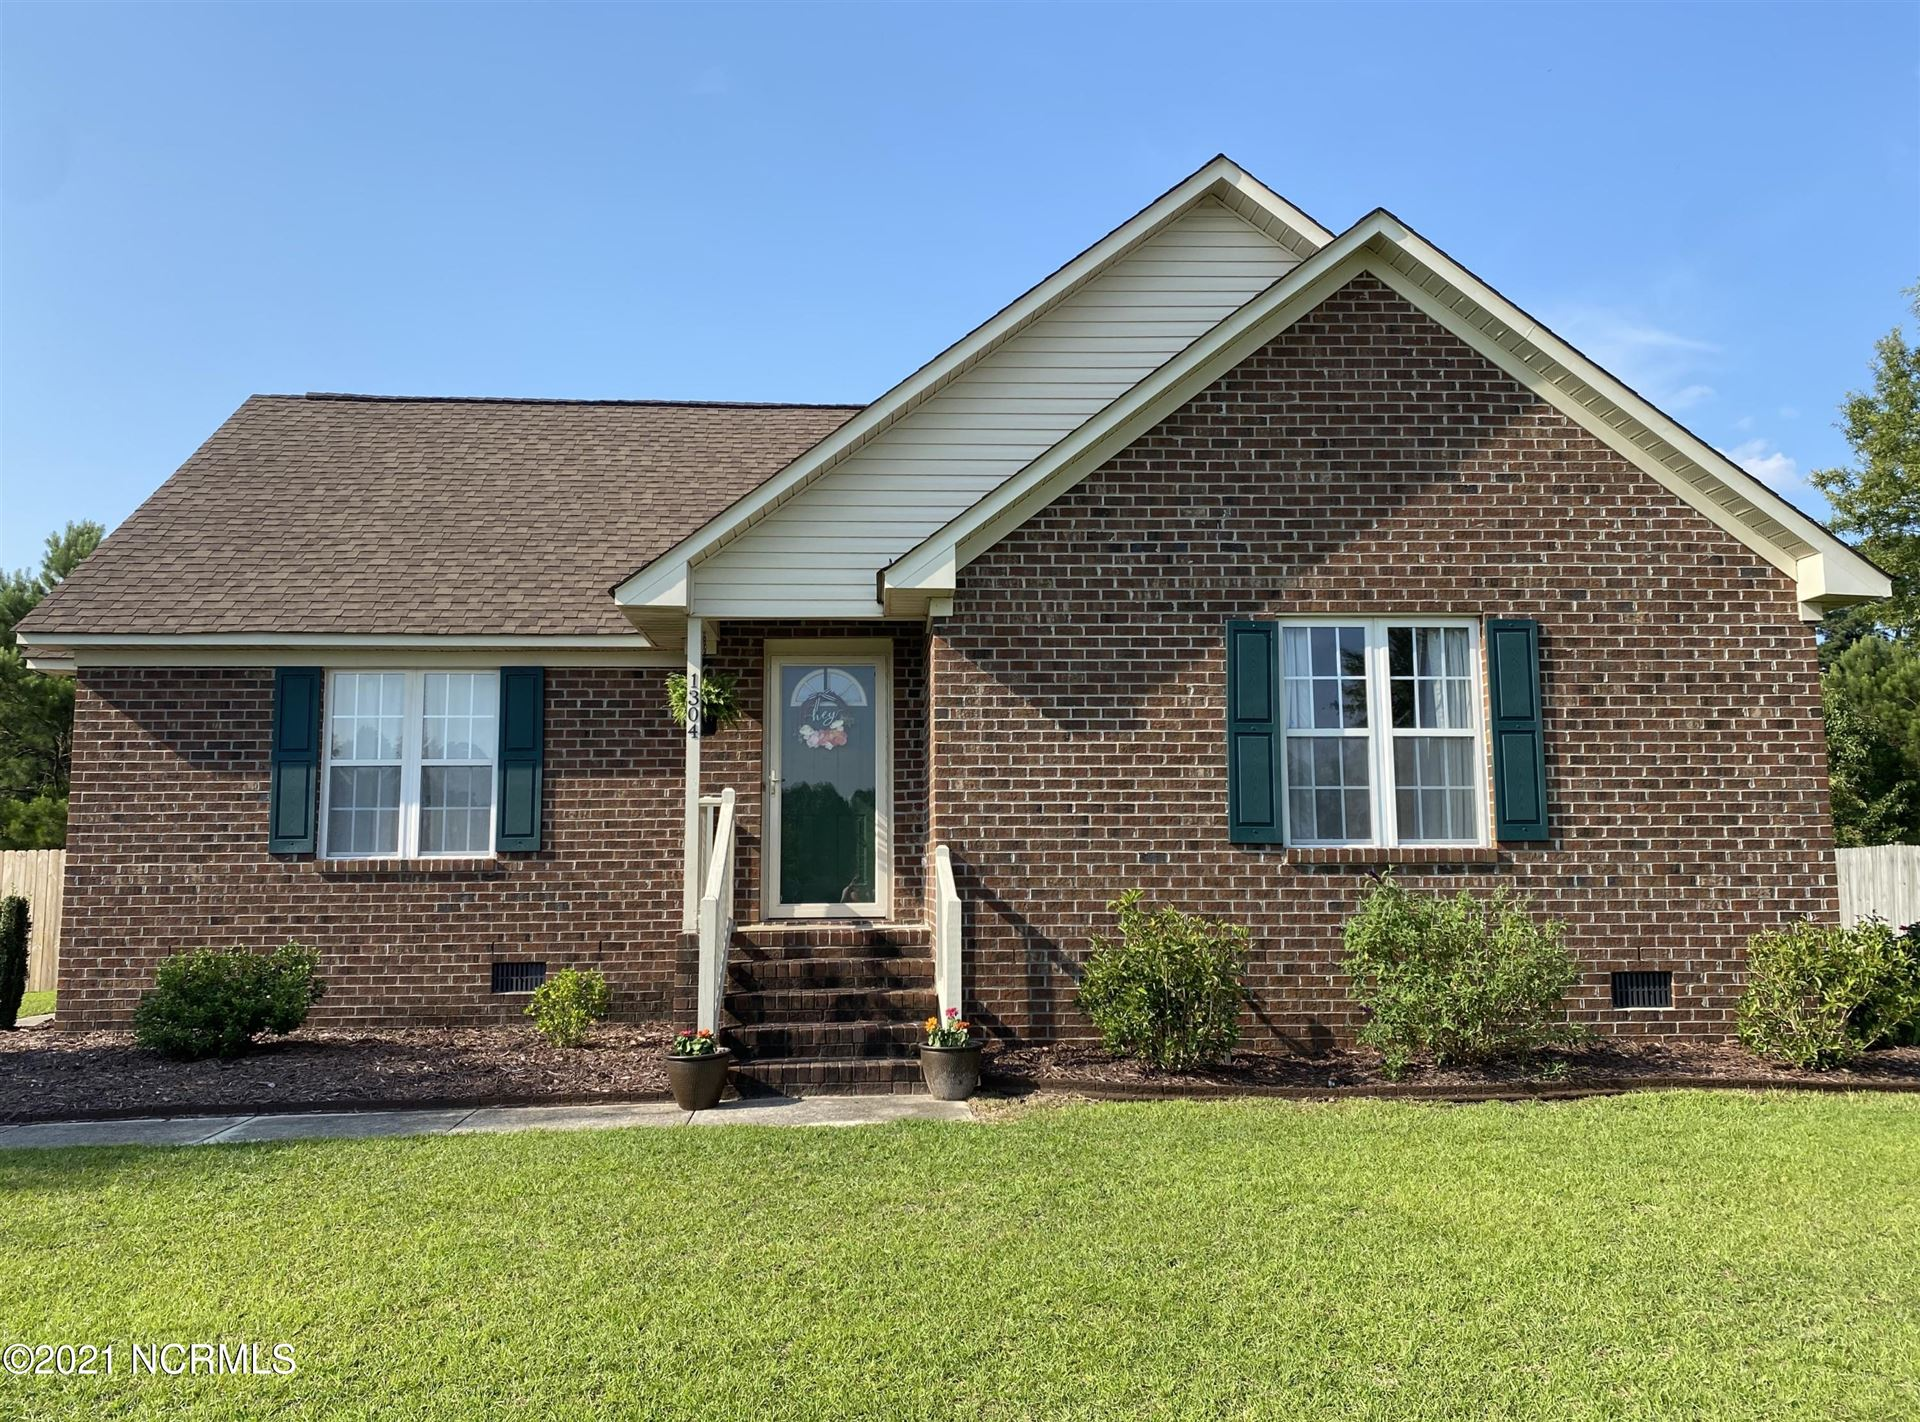 Photo of 1304 Old Village Road, Greenville, NC 27834 (MLS # 100281319)